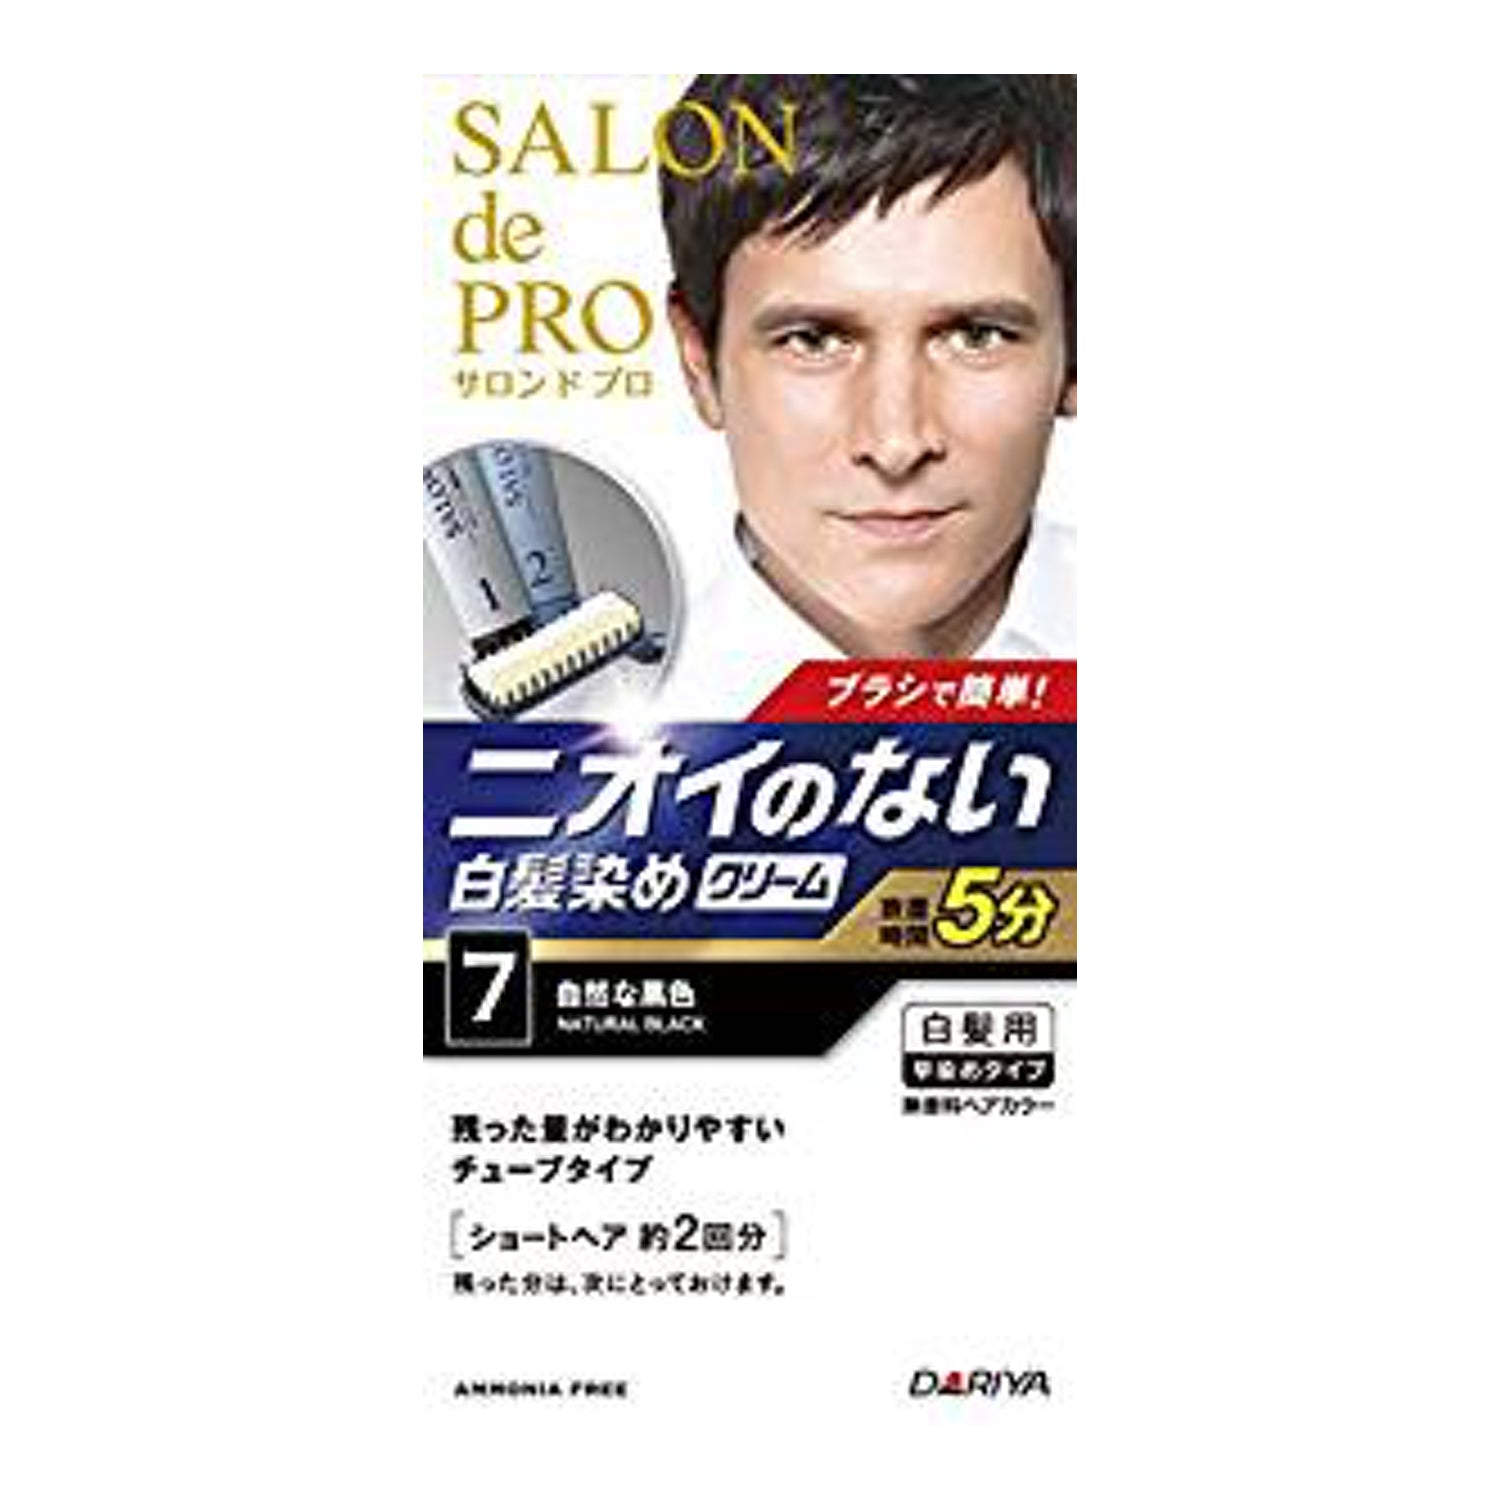 Dariya Salon De professional fragrance-free hair color Men's Speedy 7 (natural black)